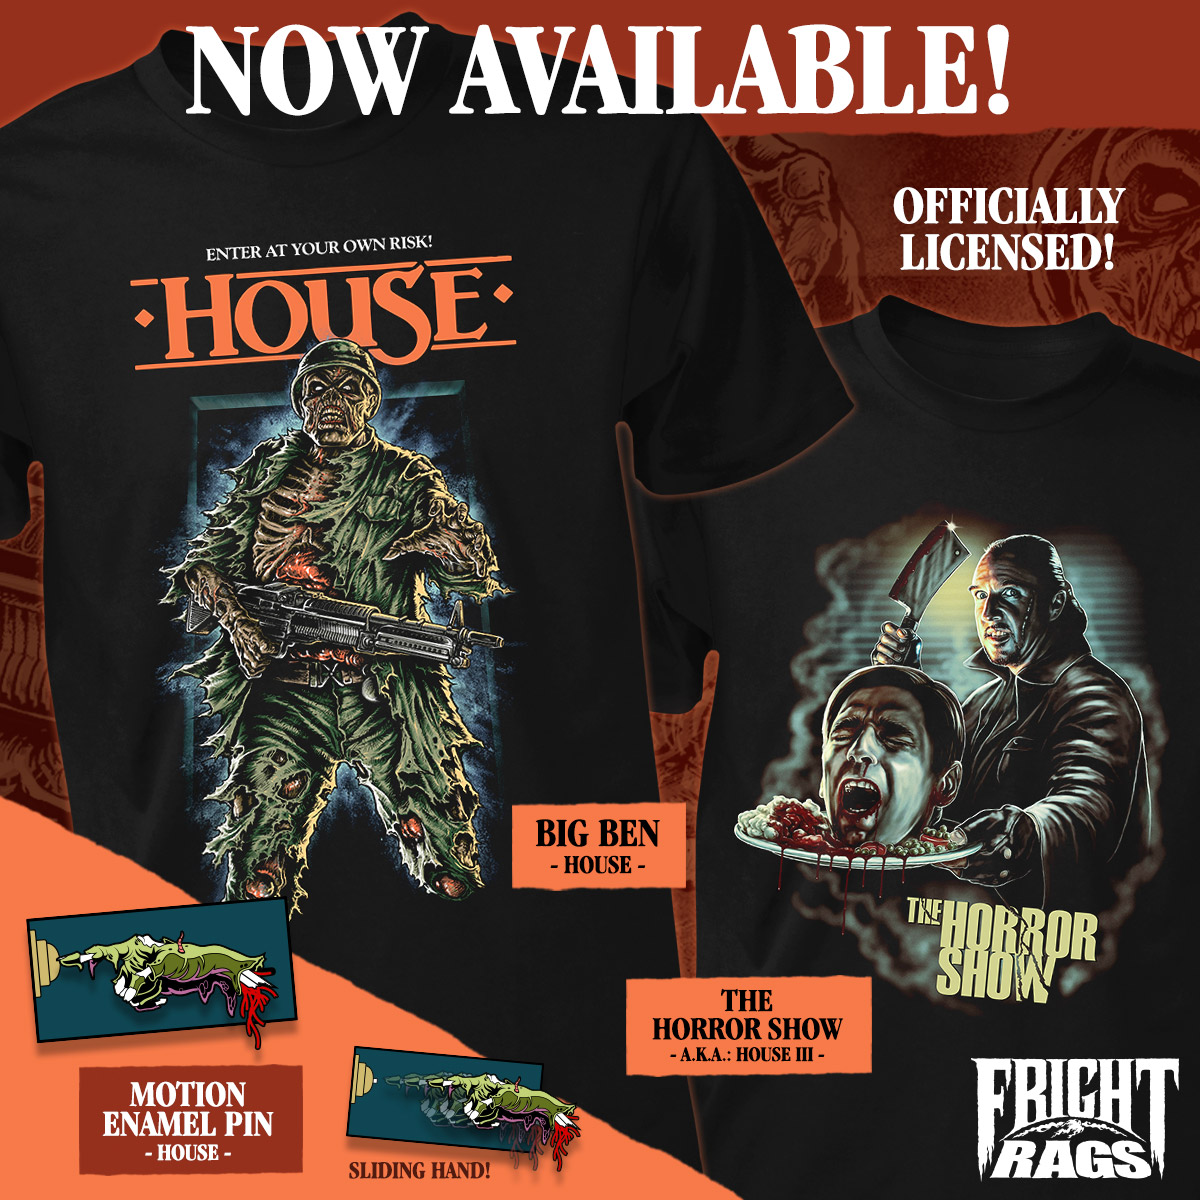 0819-House-FrightRags.jpg